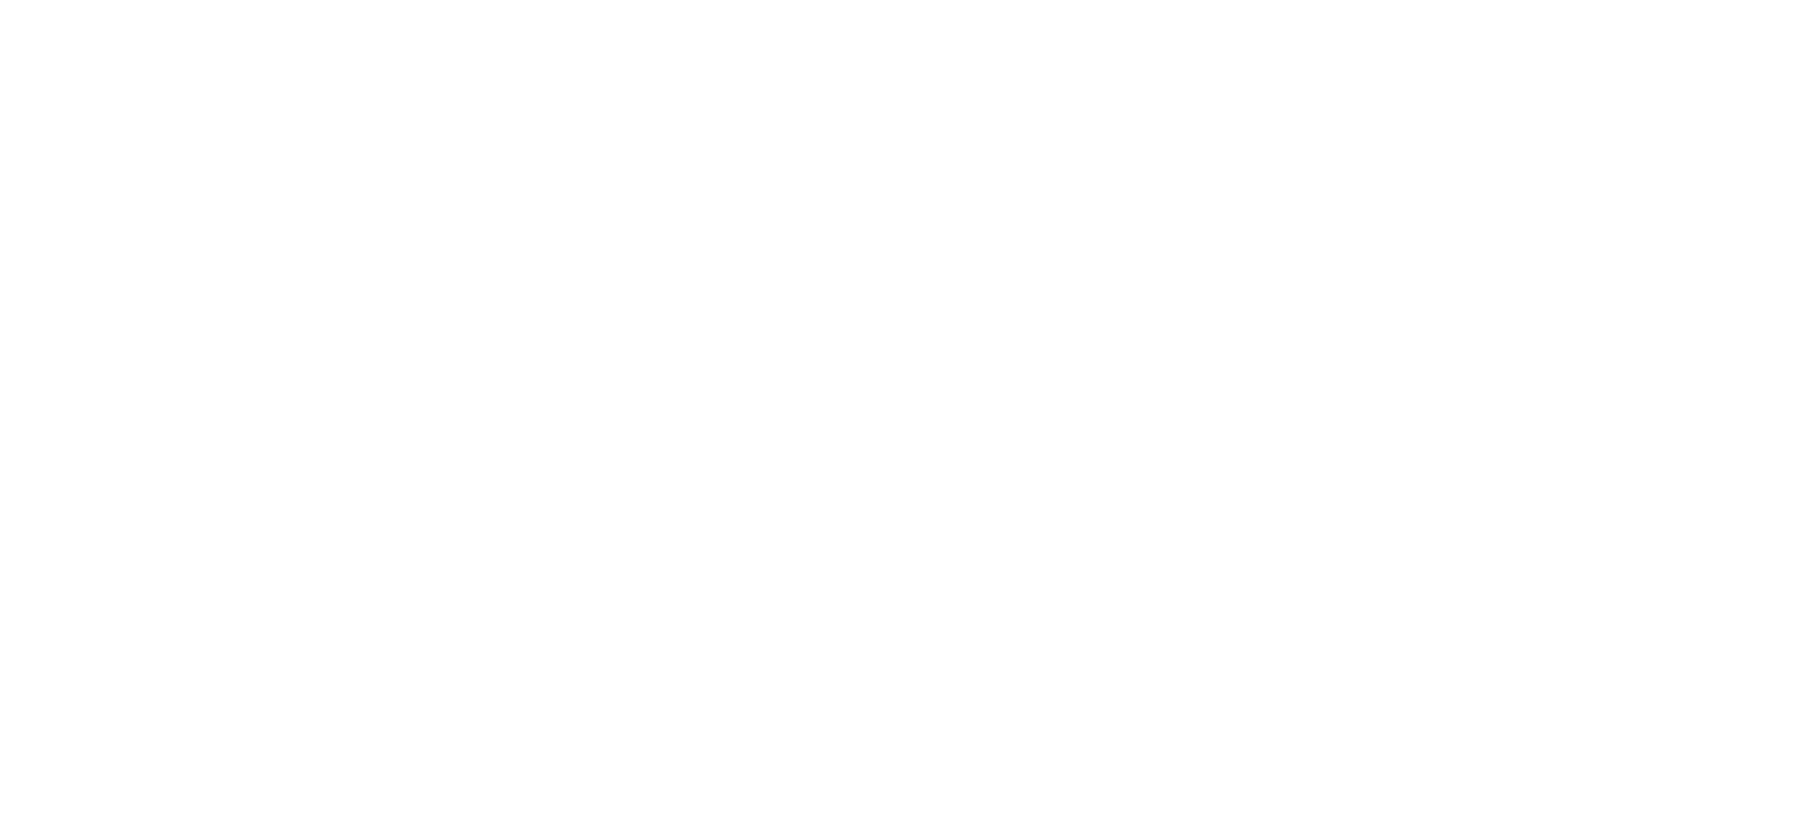 Curtis Power Solutions